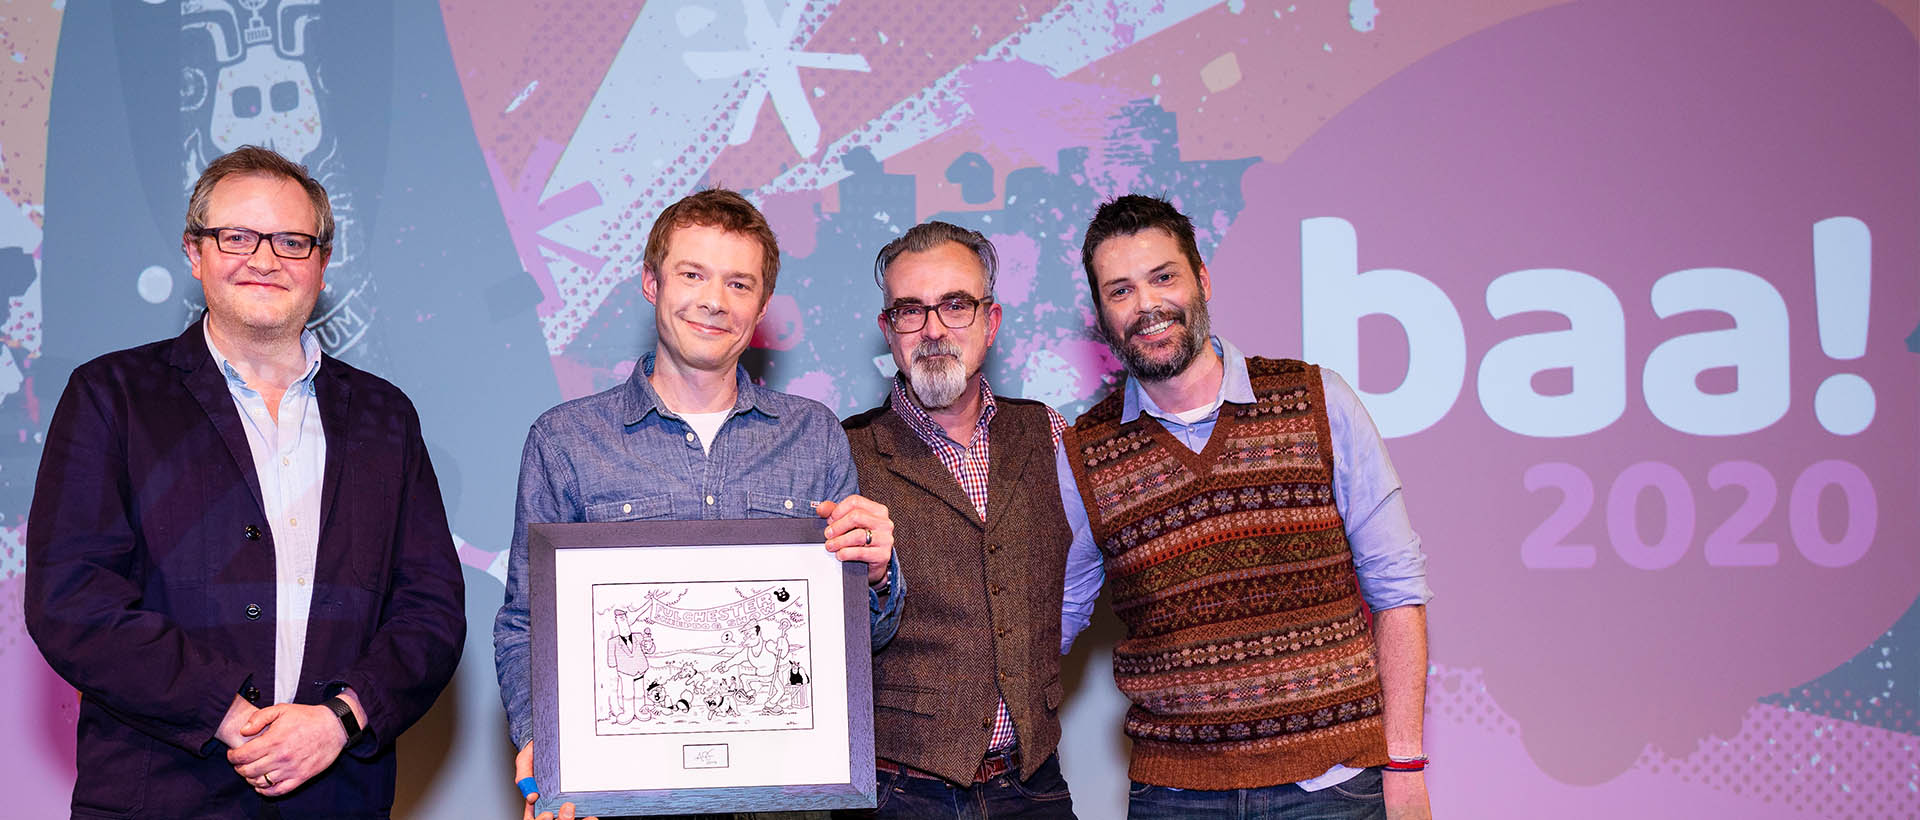 Second Home Animation Studios receiving an award at the British Animation Awards.